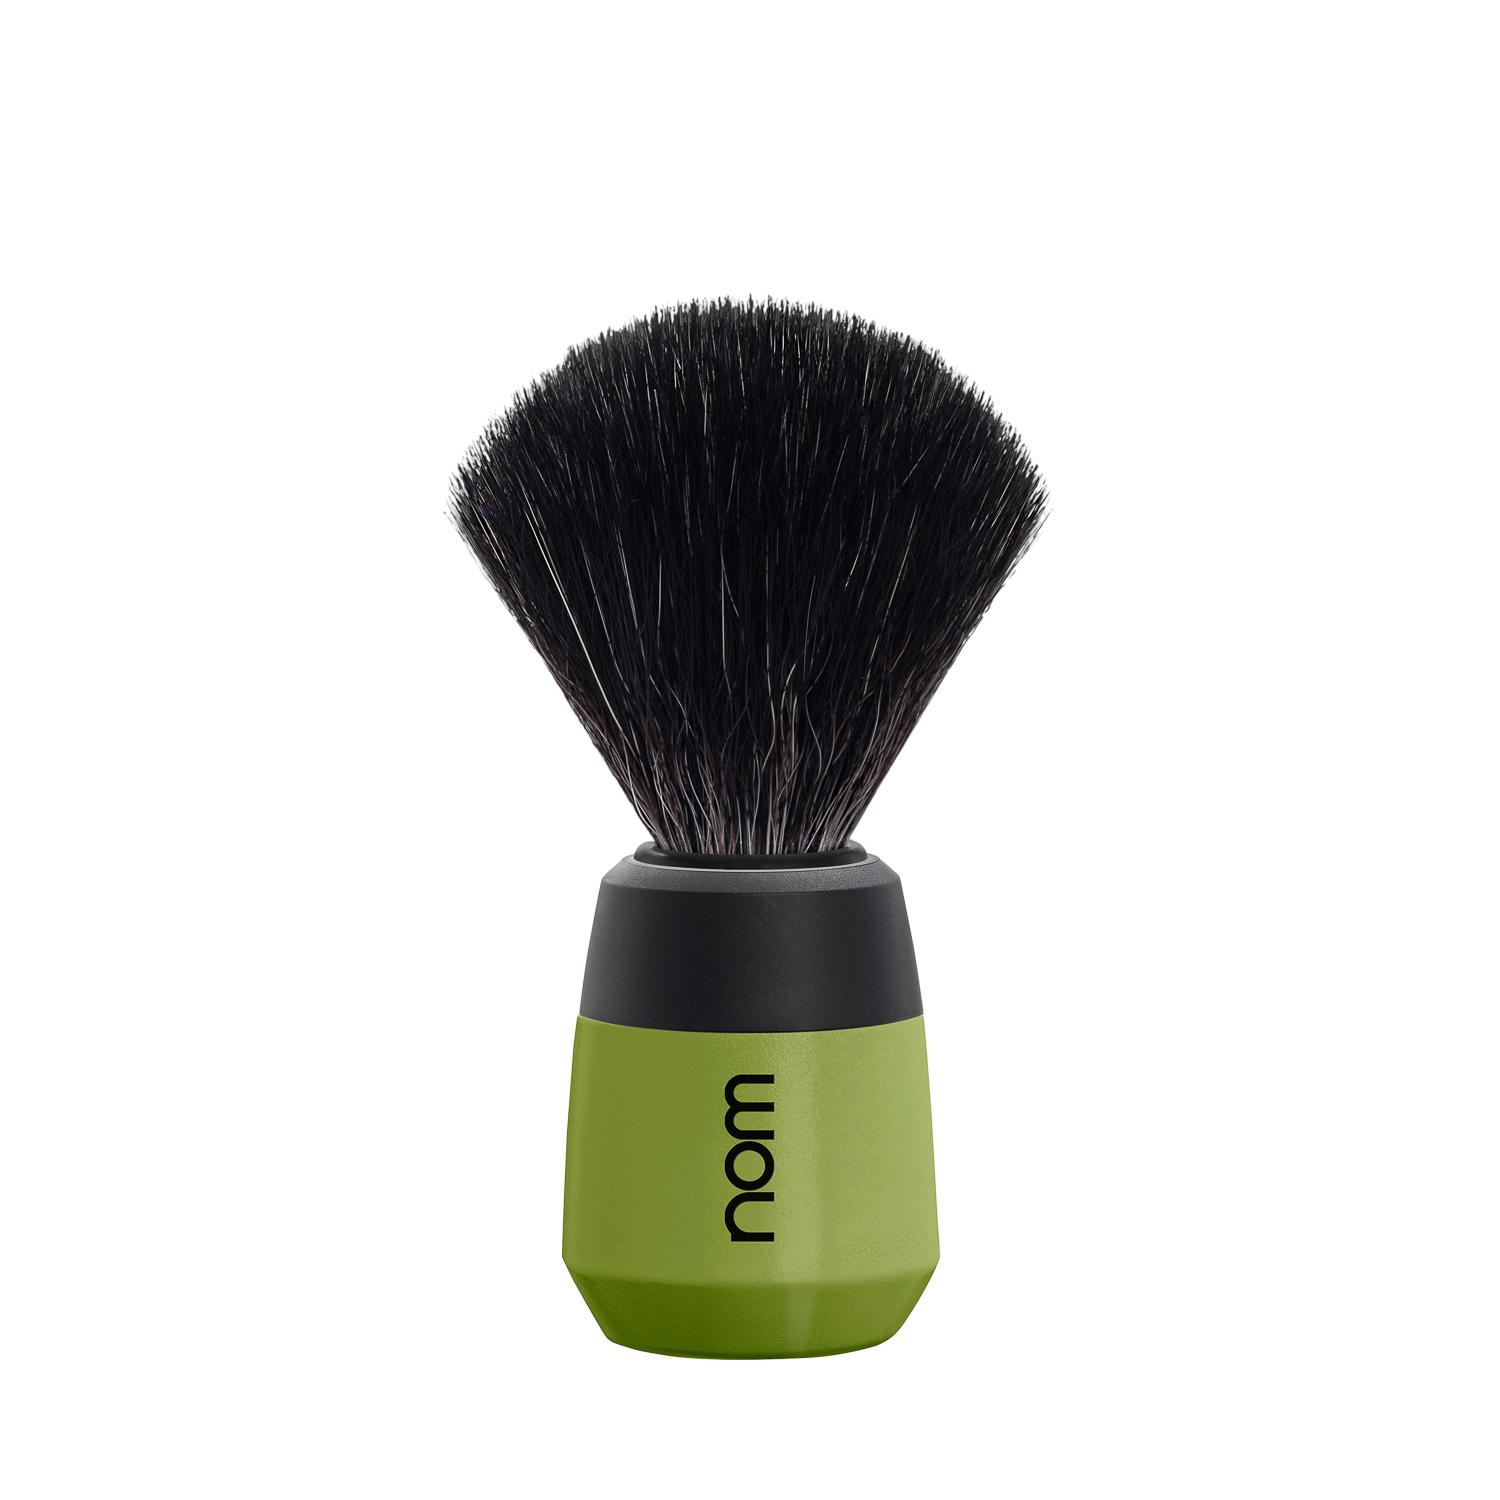 nom MAX, Olive, Black Fibre Shaving Brush